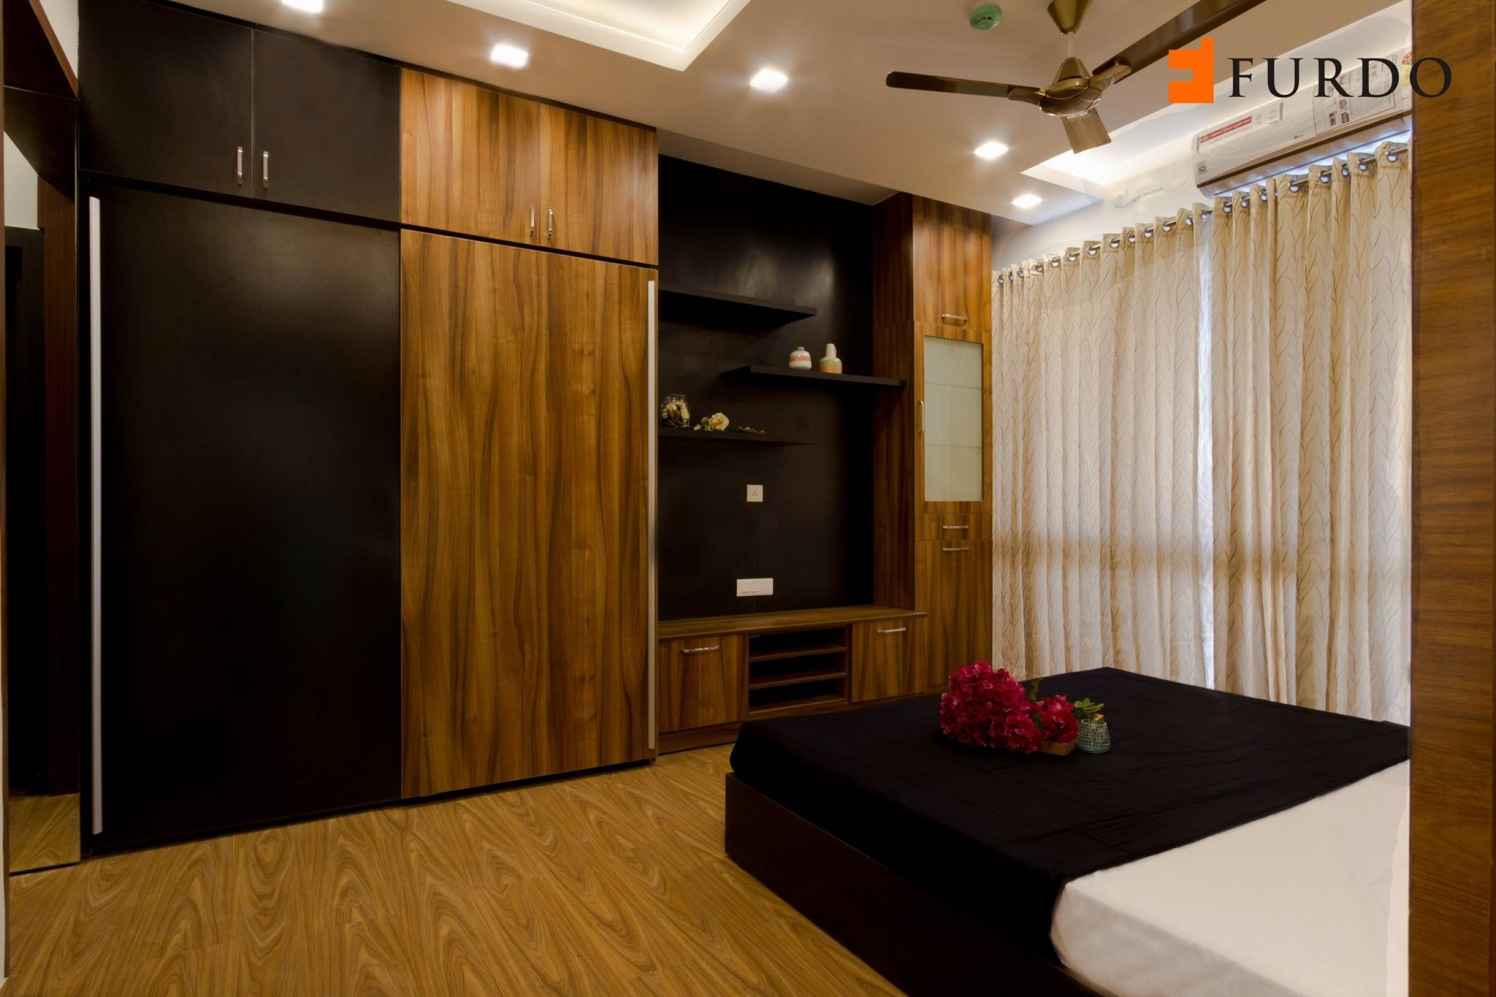 Bedroom With Wooden Furnishing and black wardrobe by Furdo.com Bedroom Modern | Interior Design Photos & Ideas